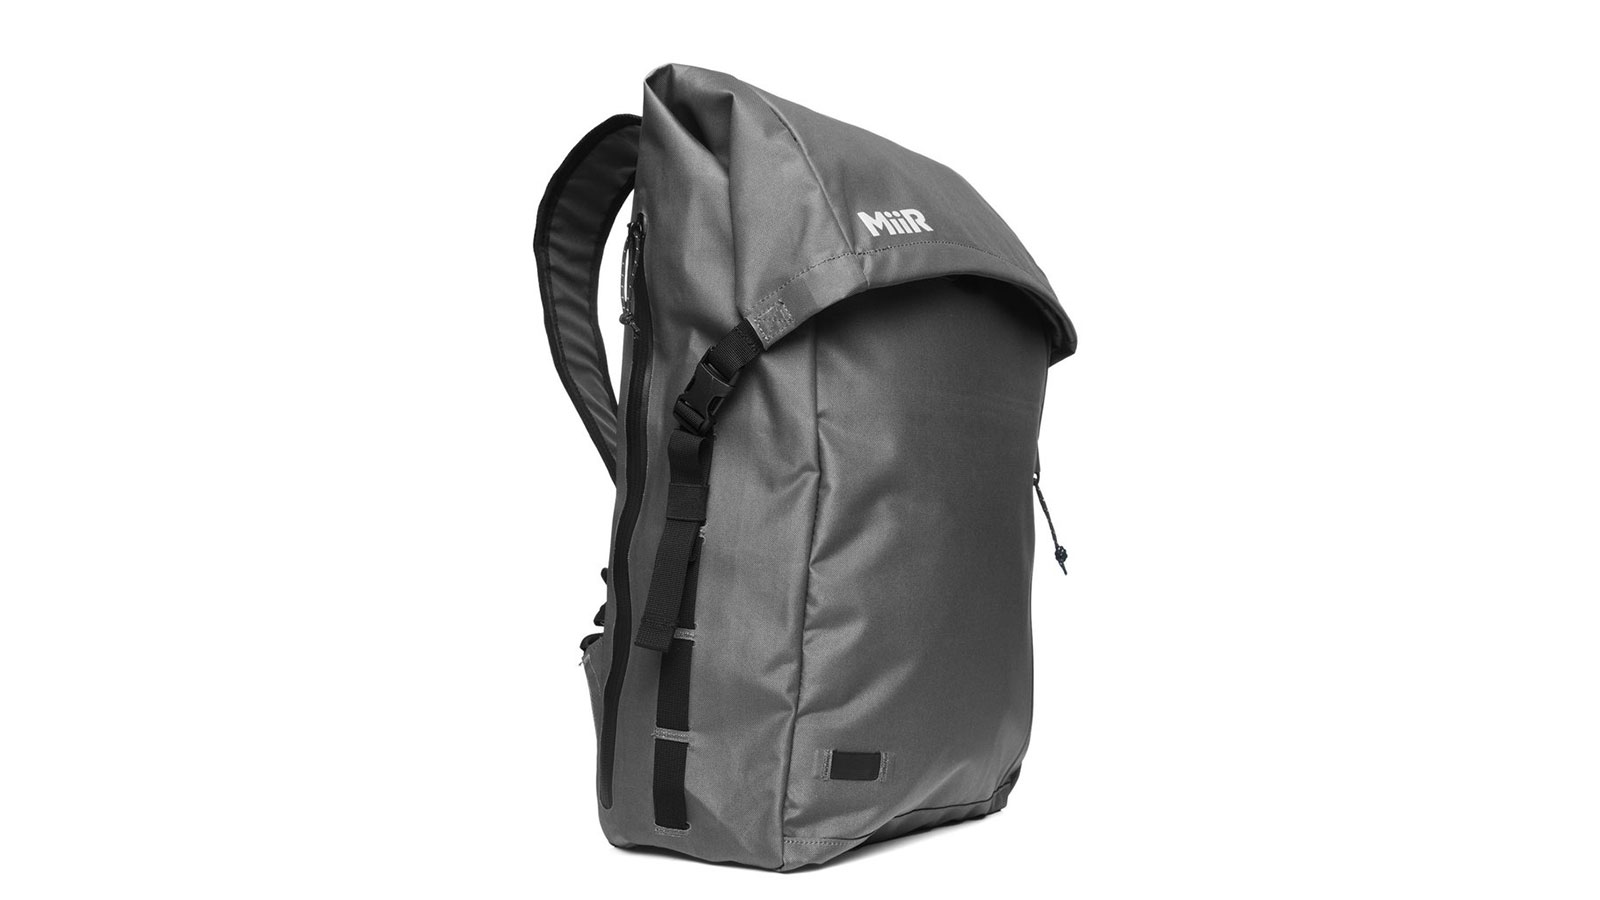 MiiR 25 L Commuter Backpack | best commuter backpacks for cyclists